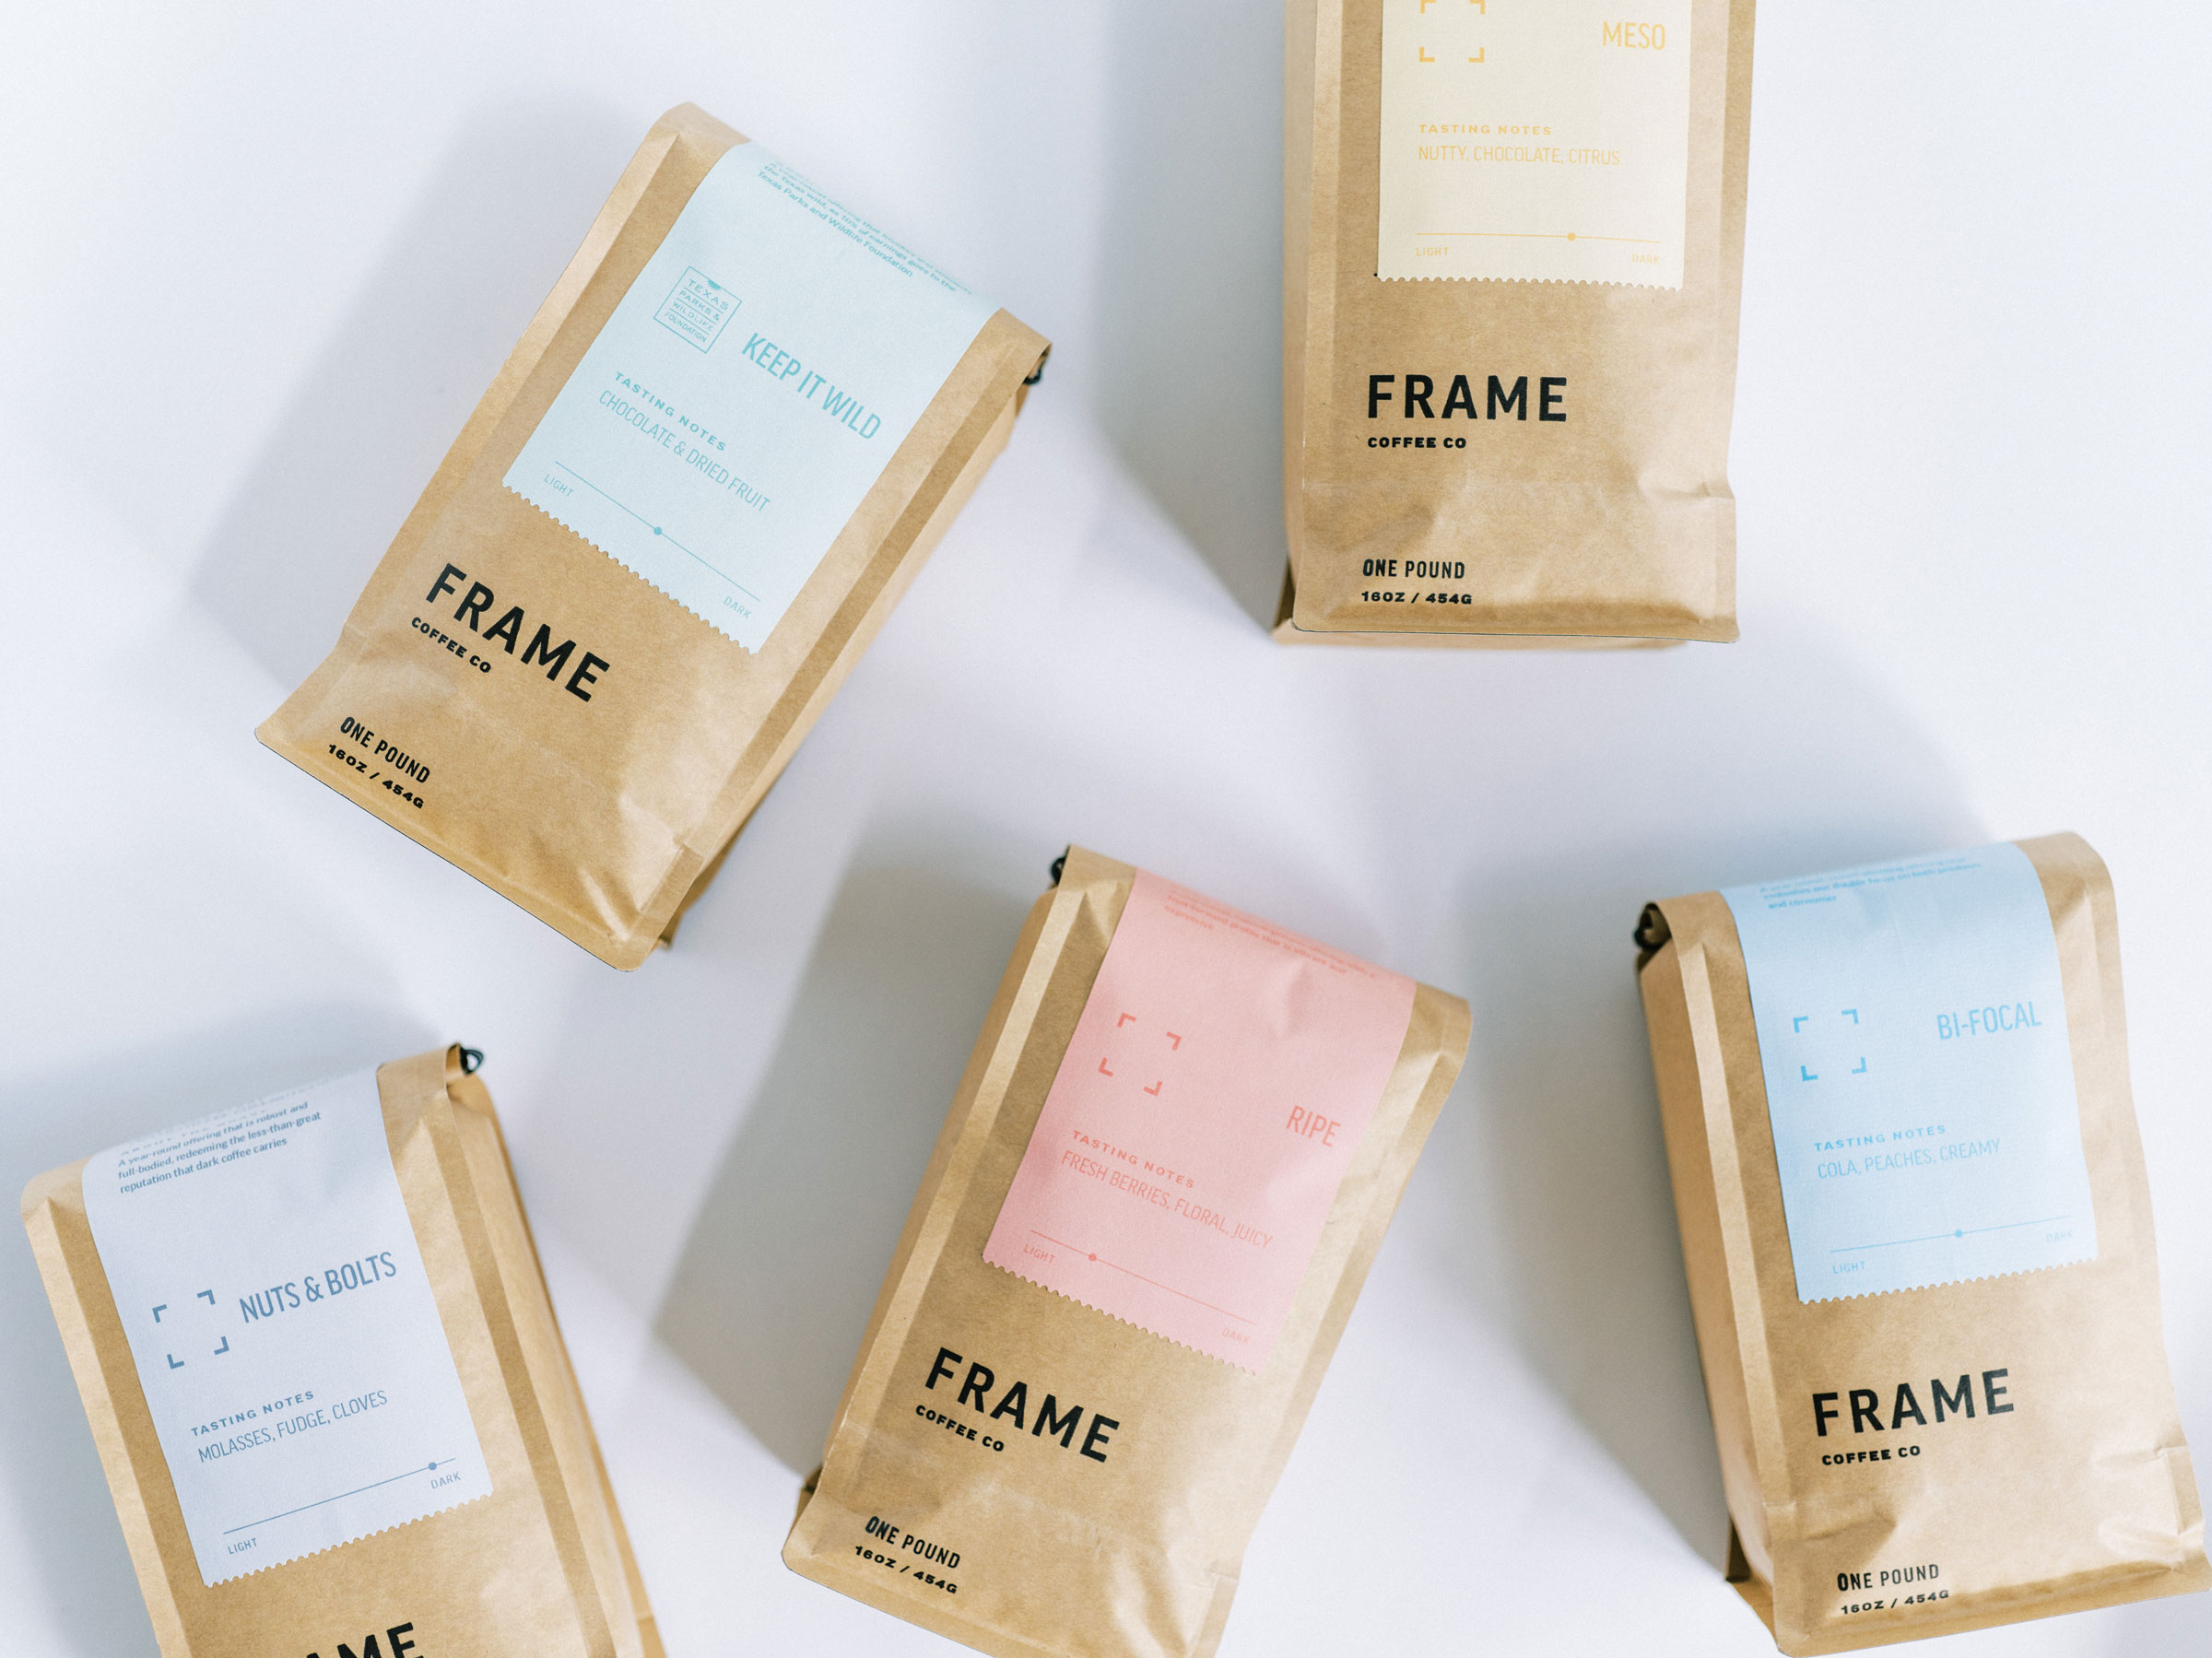 Assorted Bags of Frame Coffee Beans